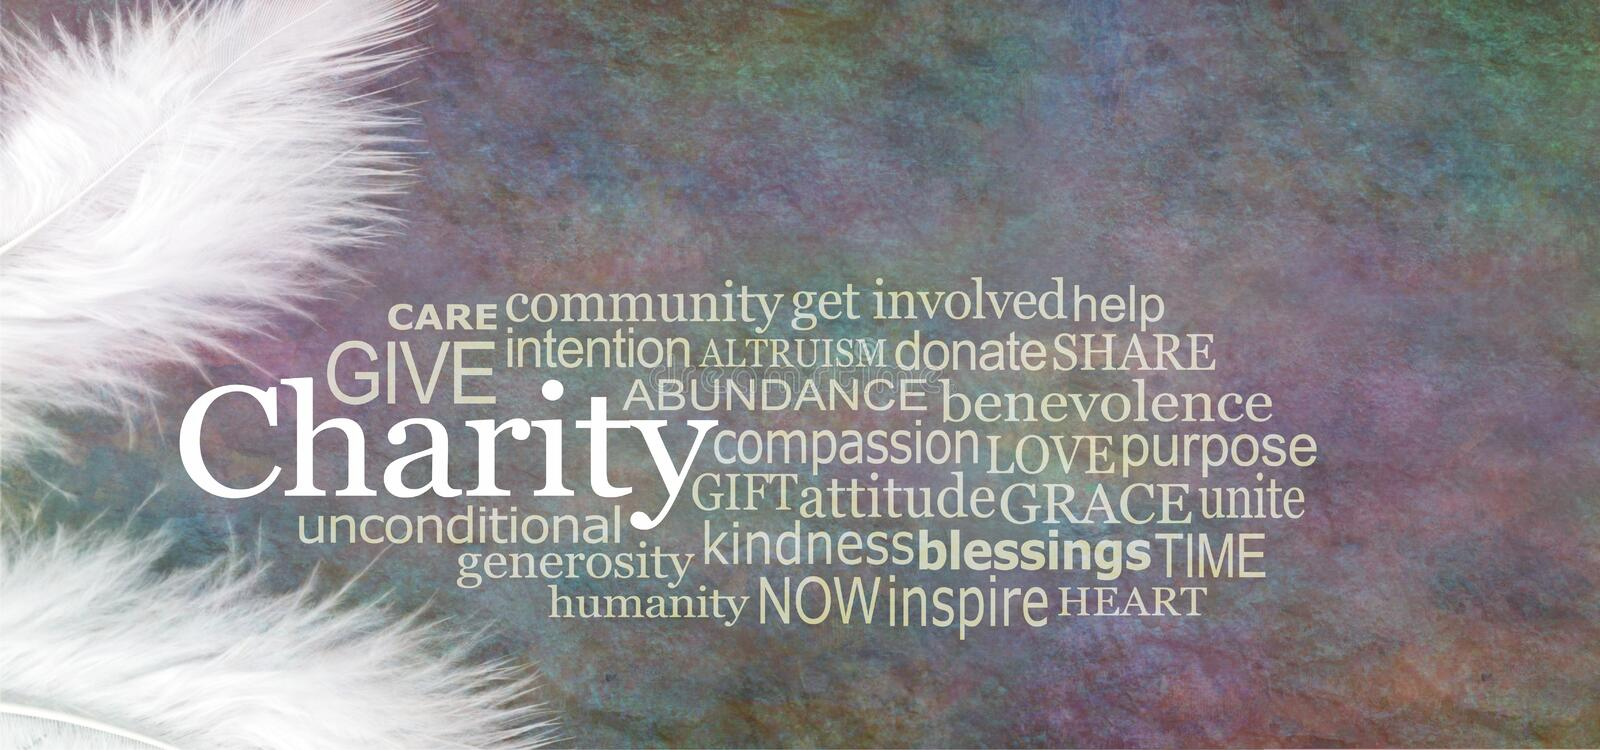 Angelic CHARITY Word Cloud Rustic Banner. Two white feathers with a CHARITY word cloud between against a dark stone effect multicoloured rustic grunge background royalty free stock image